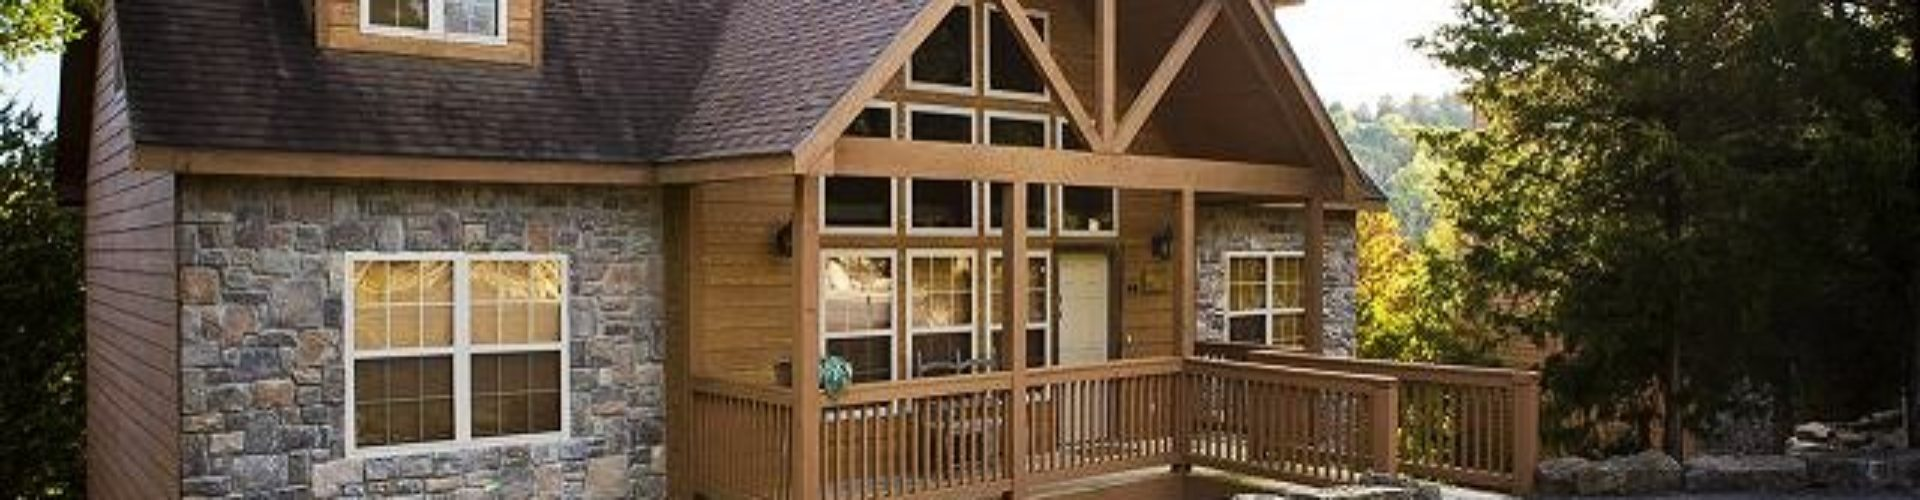 Top Of The 9th Lodge 4 Bedroom Cabin At Stonebridge Branson Mo The Travel Office